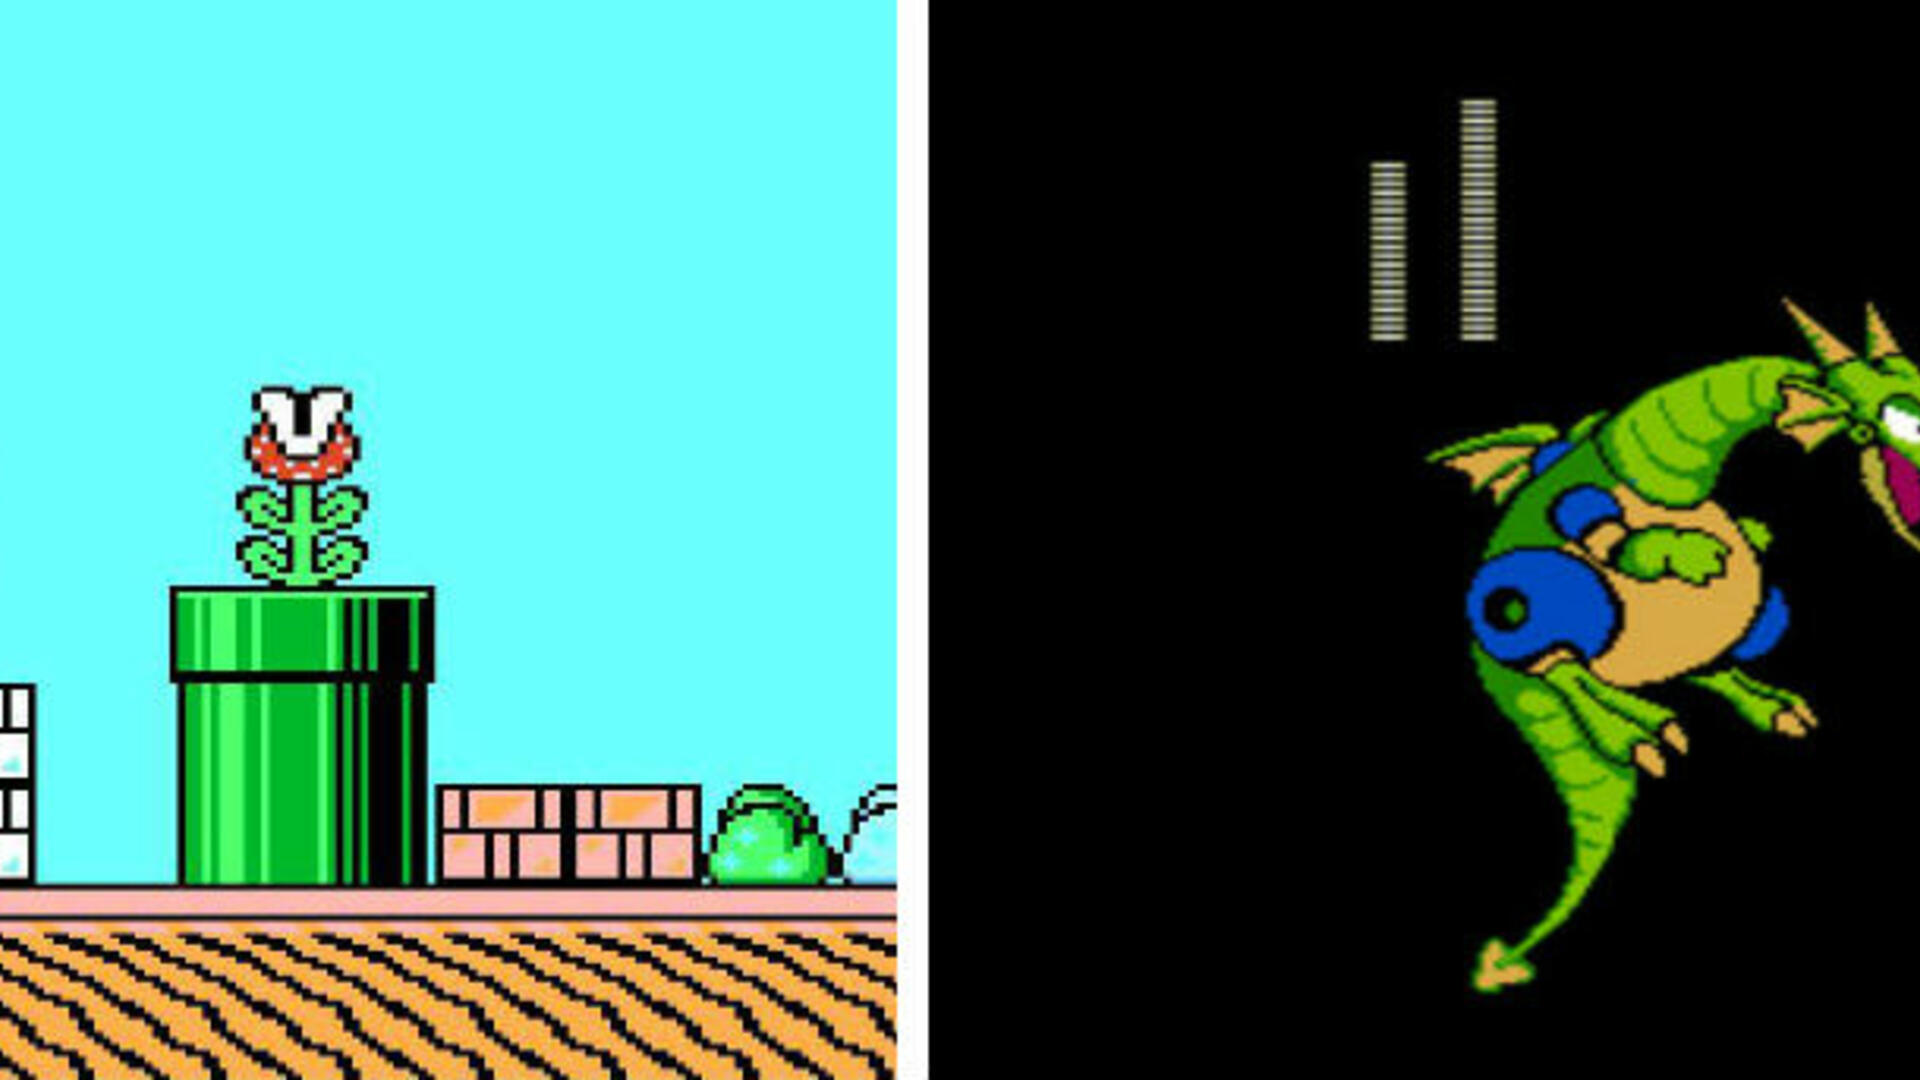 Retro Game Fans Get Riled Up by the Twitter Poll from Hell